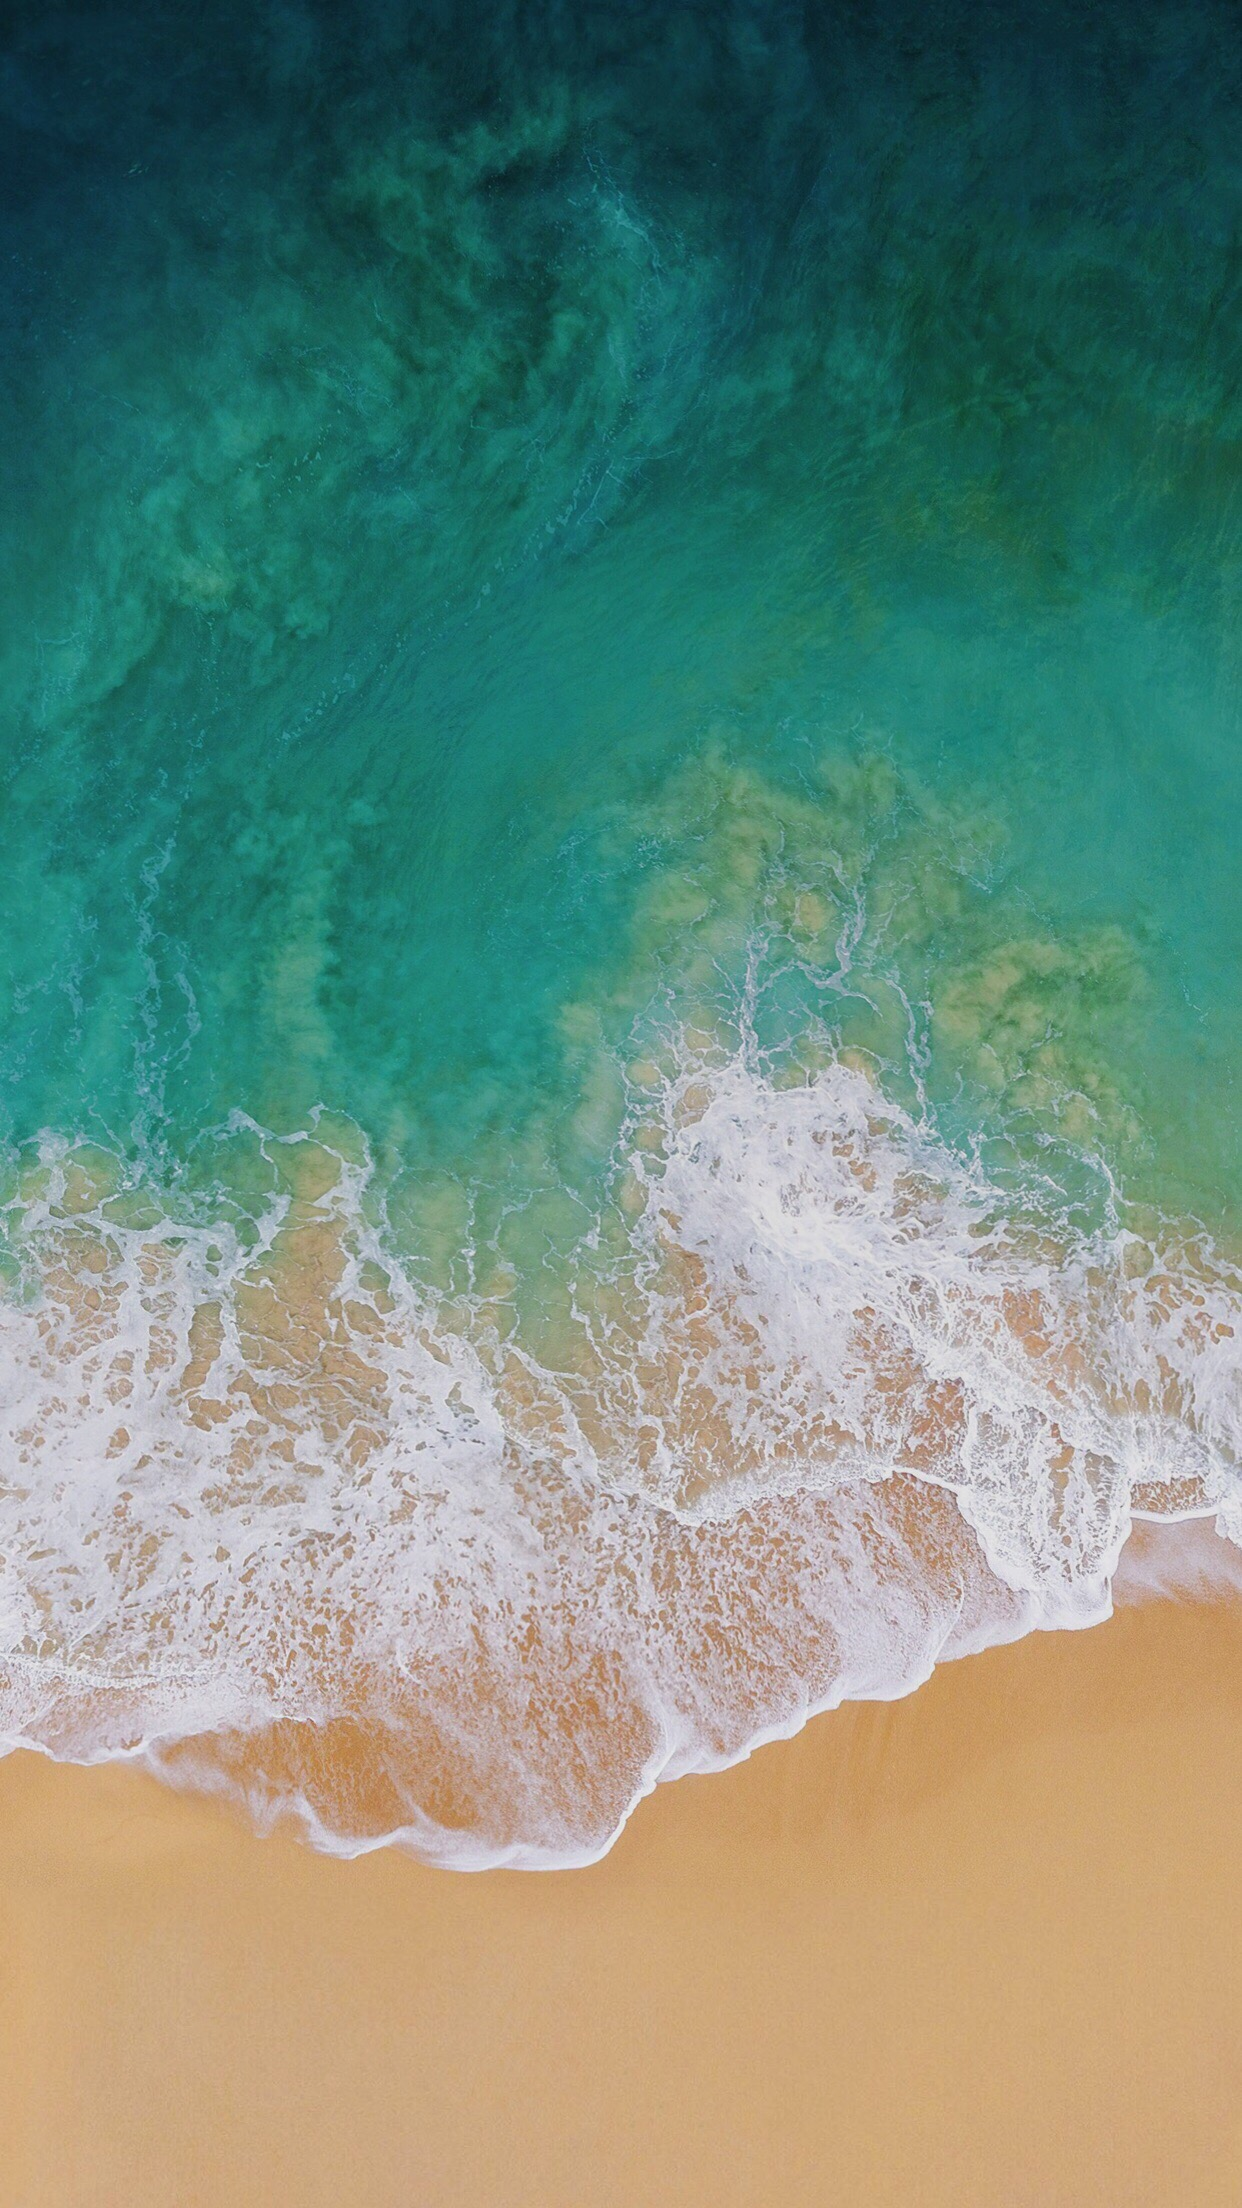 Download the iOS 11 wallpaper here in high resolution 1242x2208